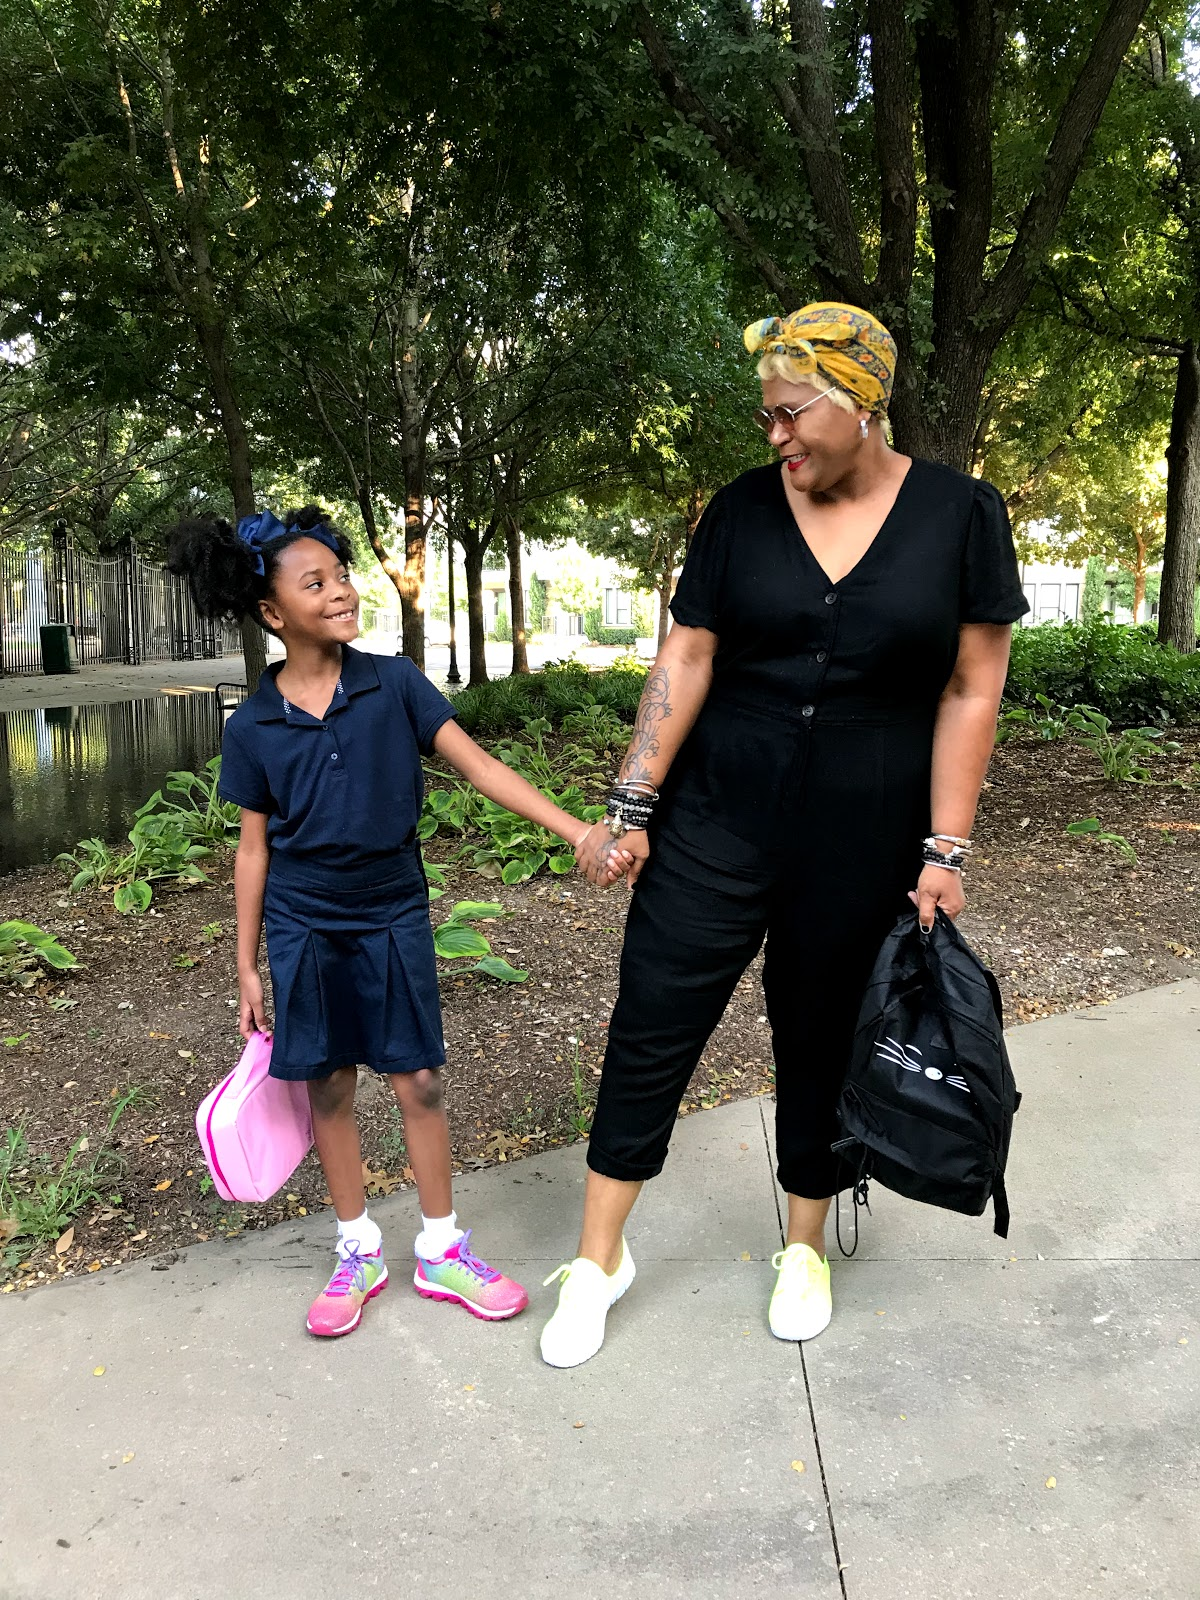 Image; Tangie Bell walking and talking with her daughter before school. Sharing a quick school morning routine